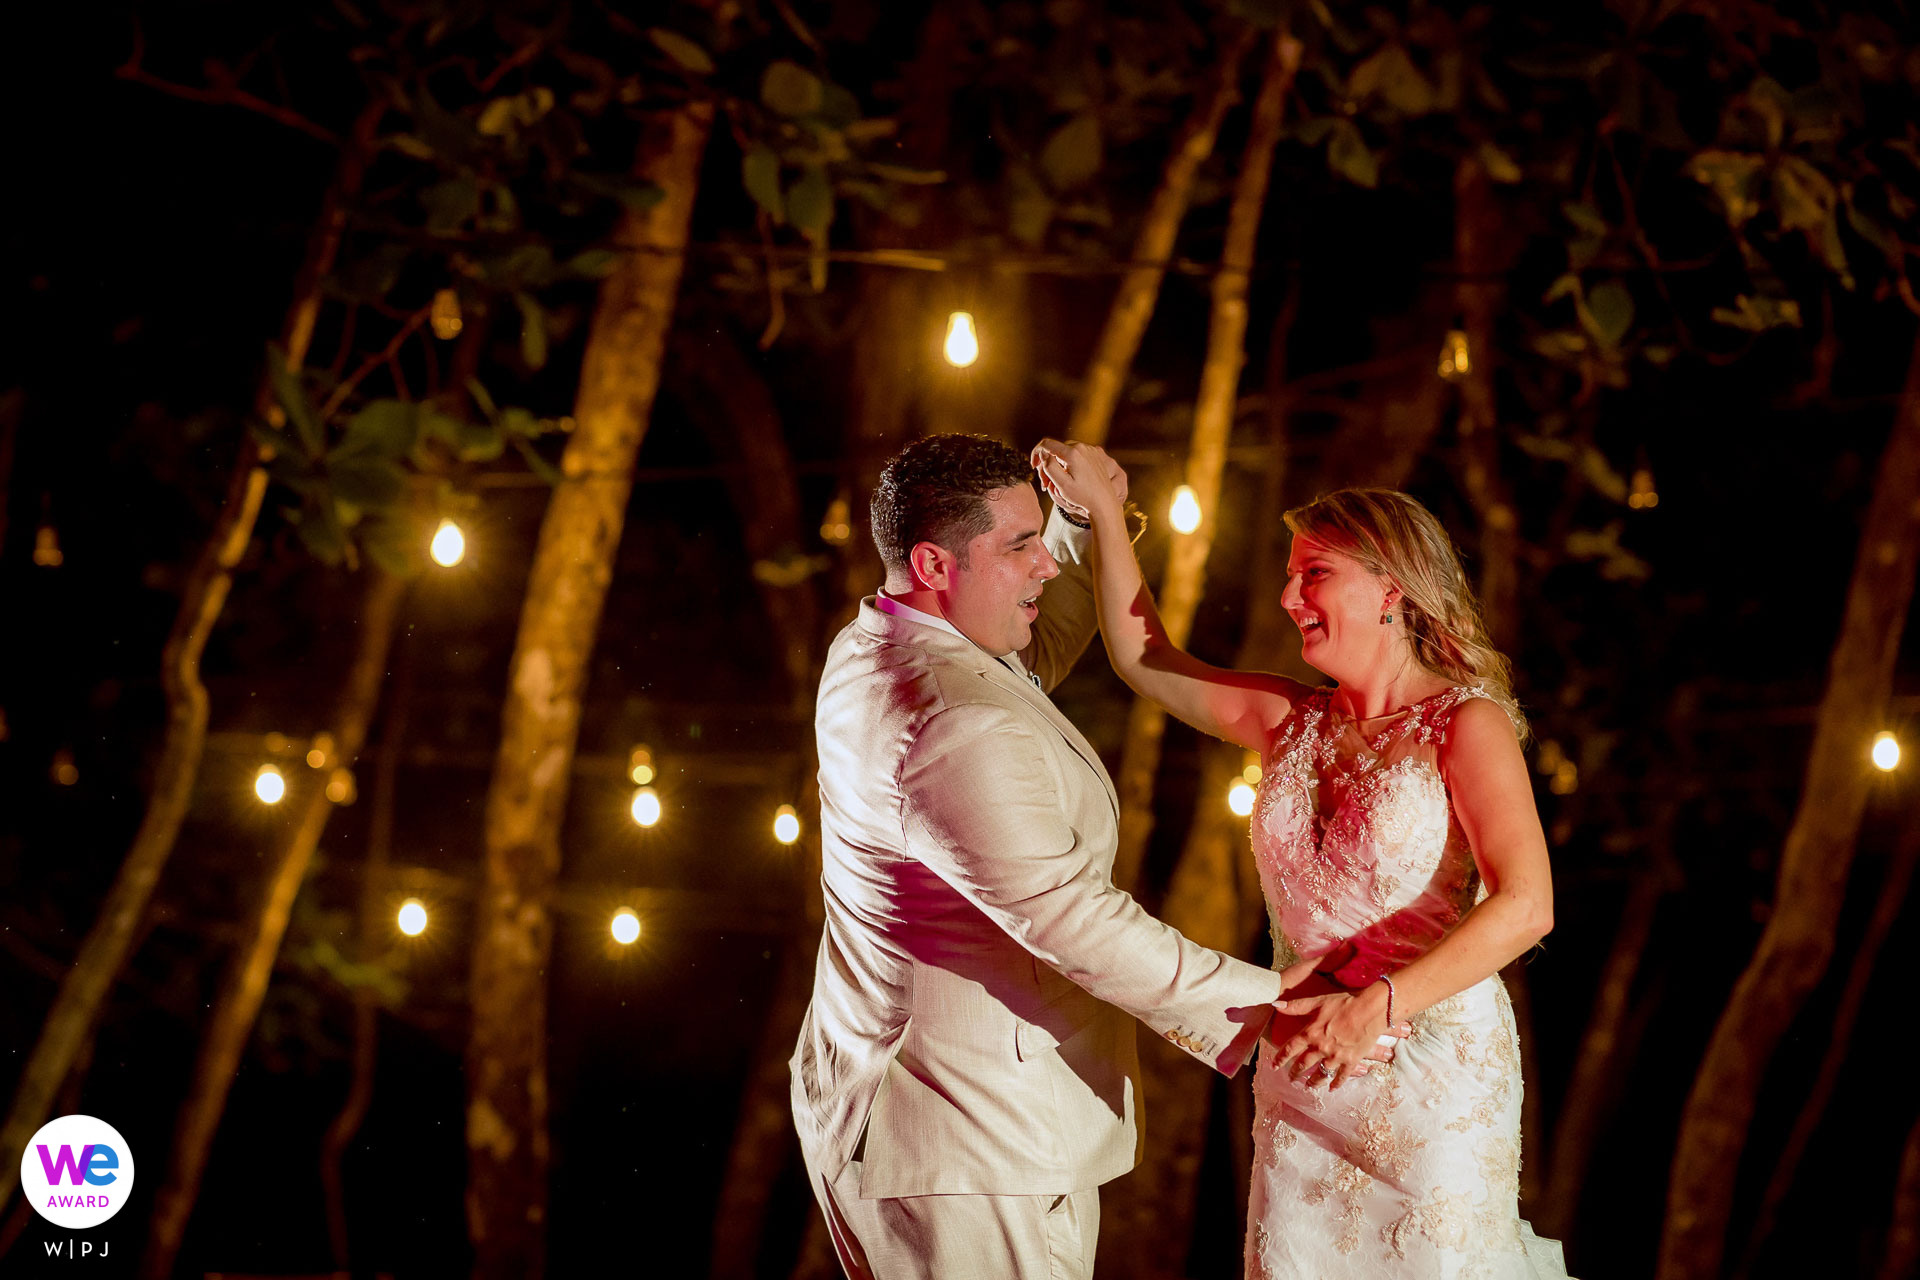 Arenas del Mar Beachfront and Rainforest Resort, Costa Rica Elopement Photos | The couple dance the night away surrounded by trees and twinkling lights